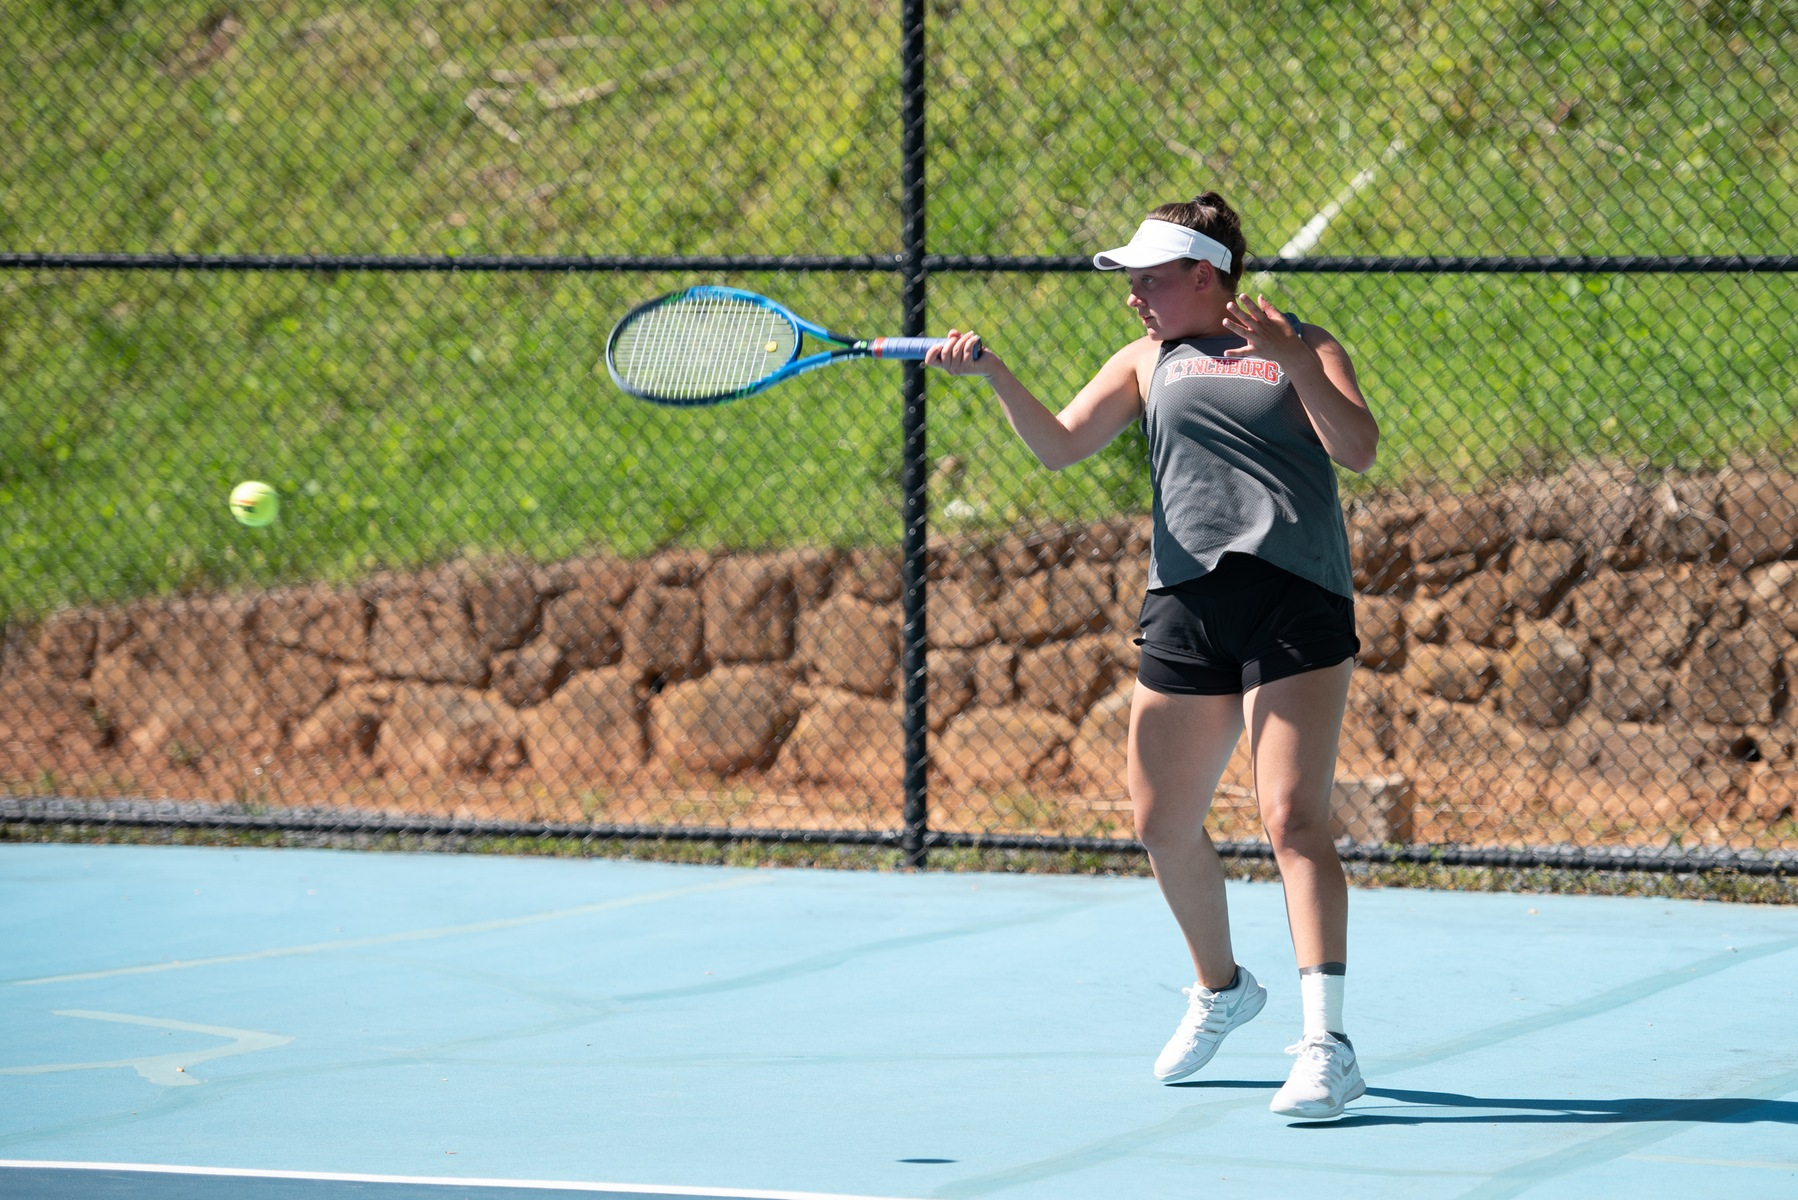 Christina Harris playing in a tennis match